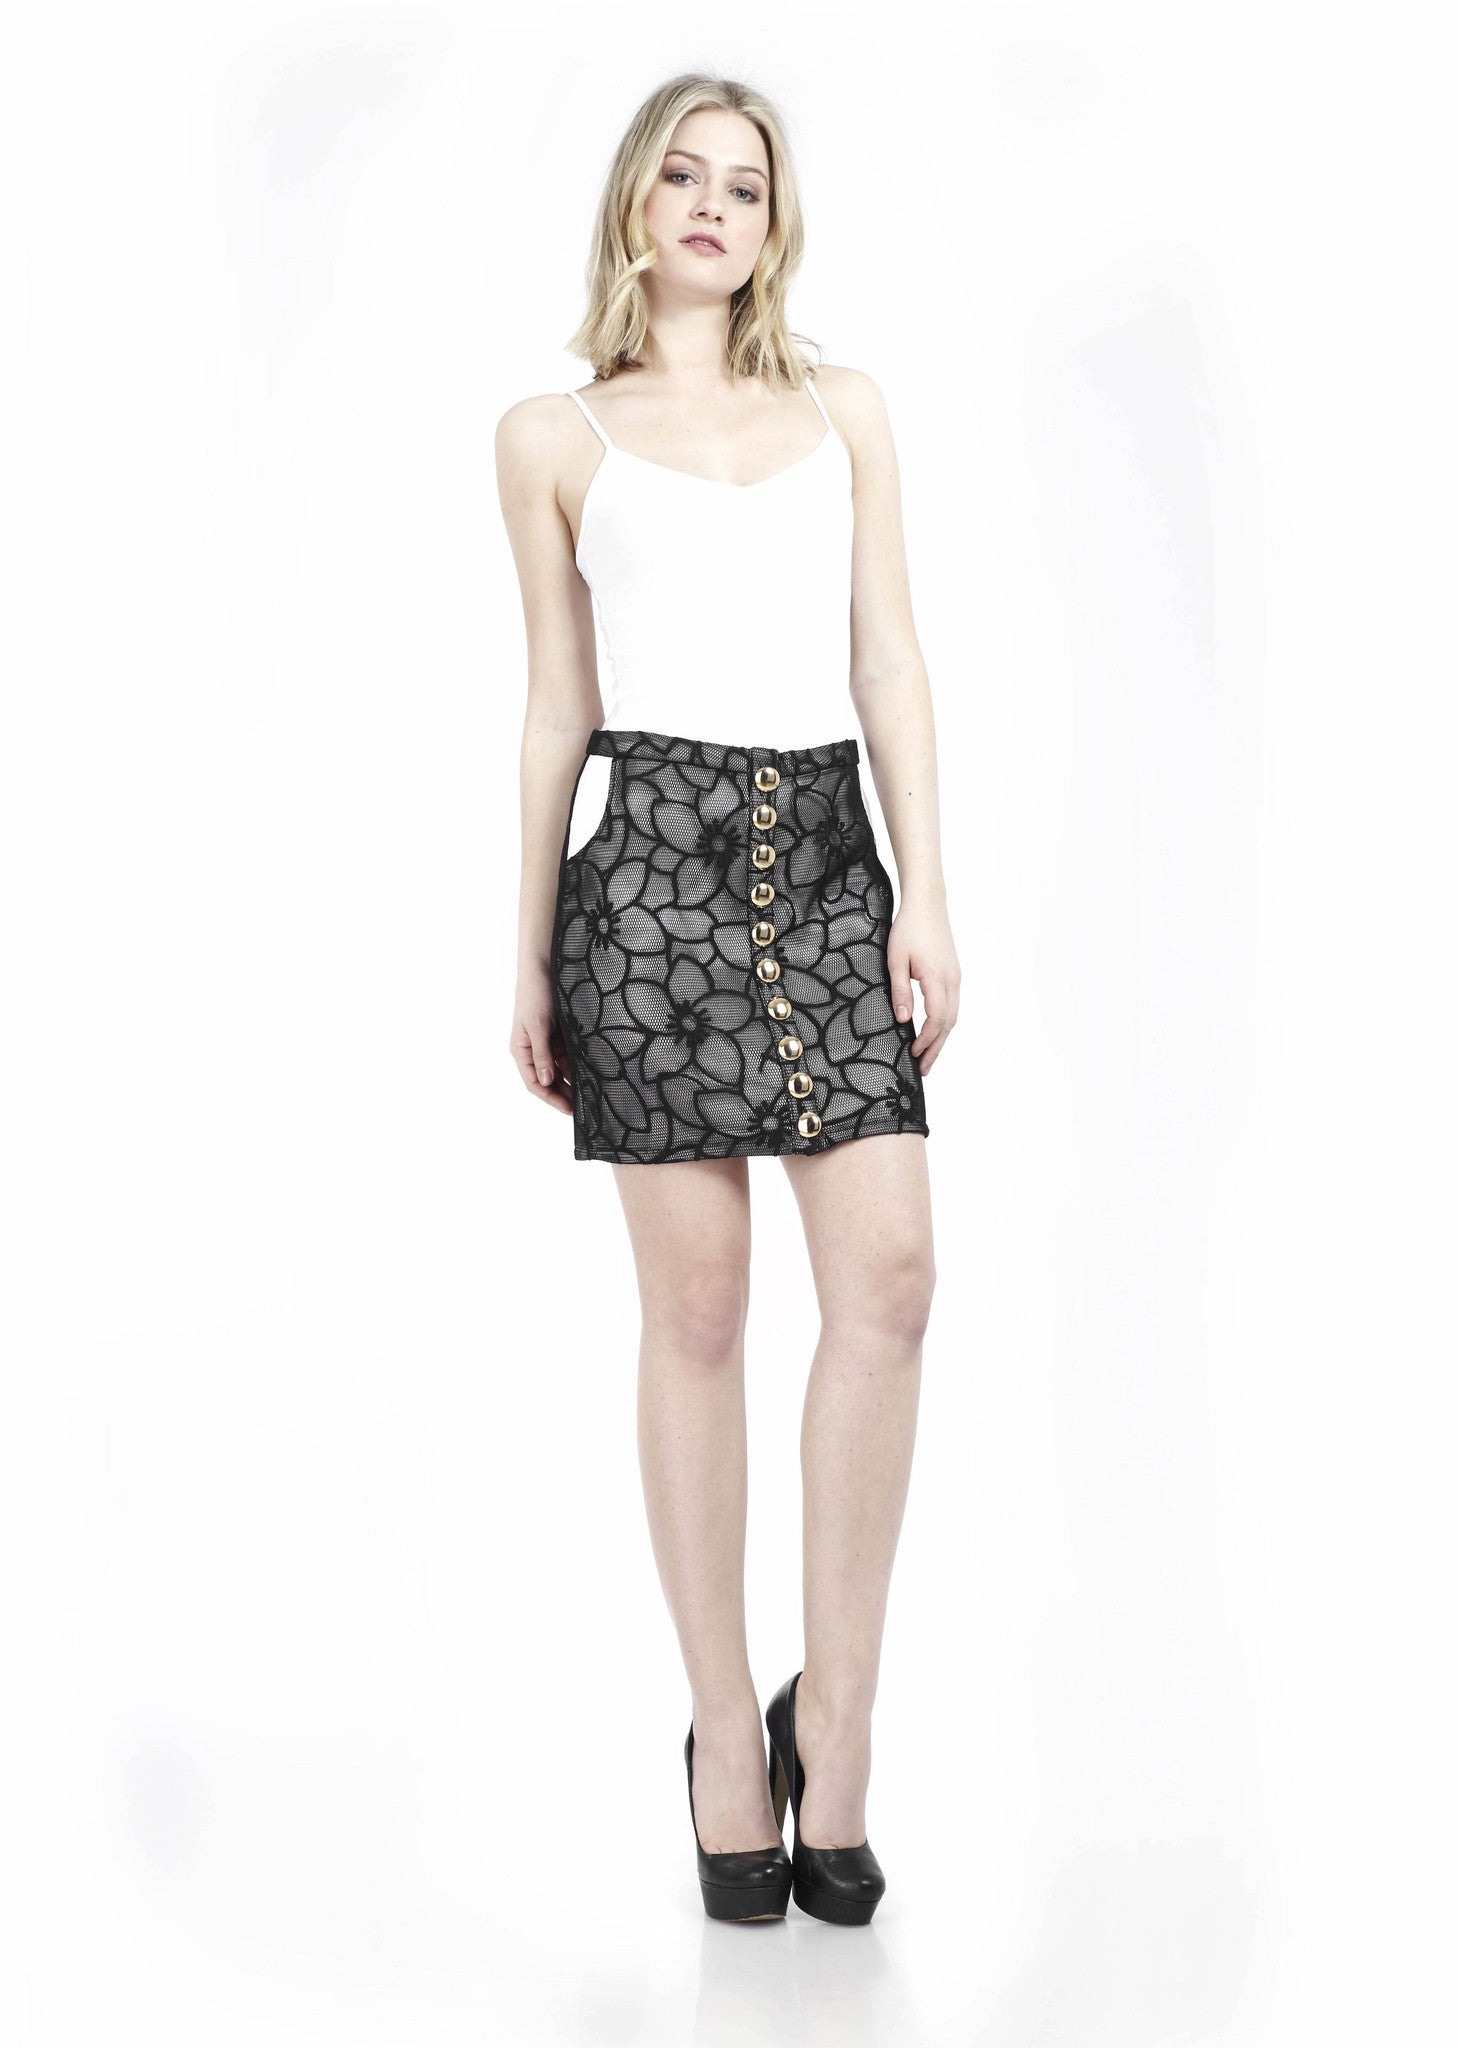 THE MARY KAE SKIRT